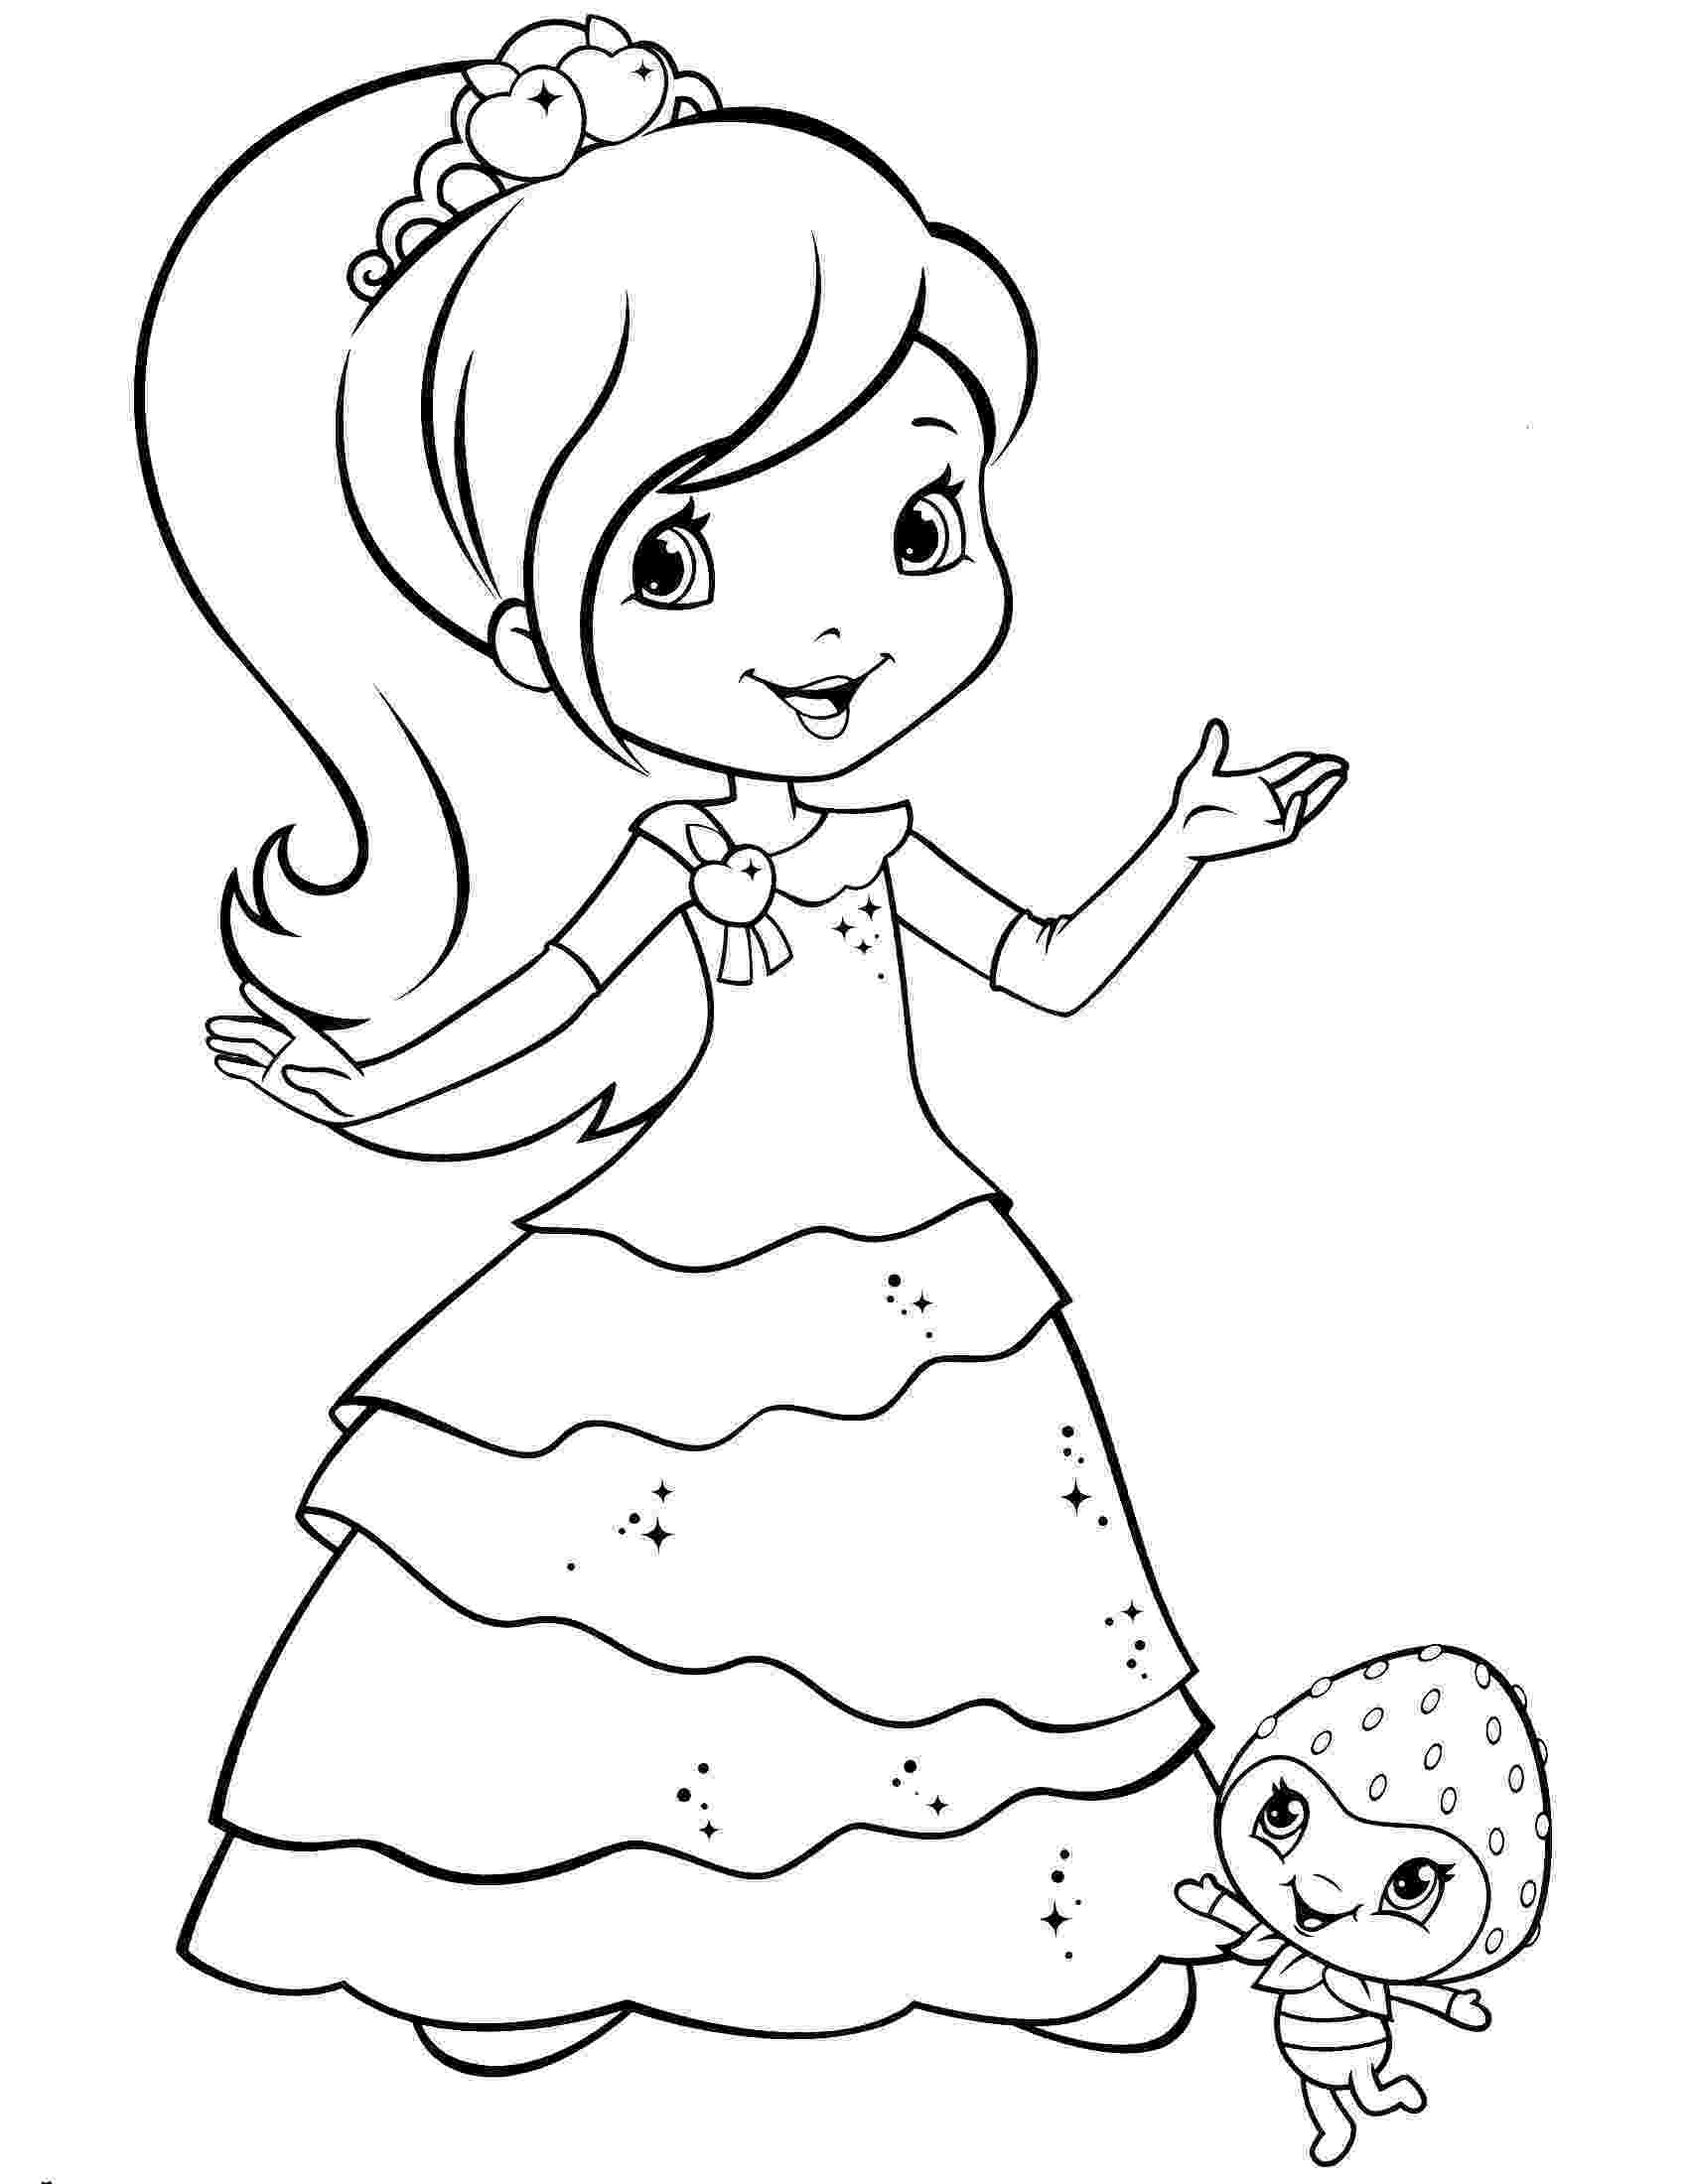 strawberry shortcake coloring page baby strawberry shortcake rocks strawberry shortcake strawberry coloring page shortcake